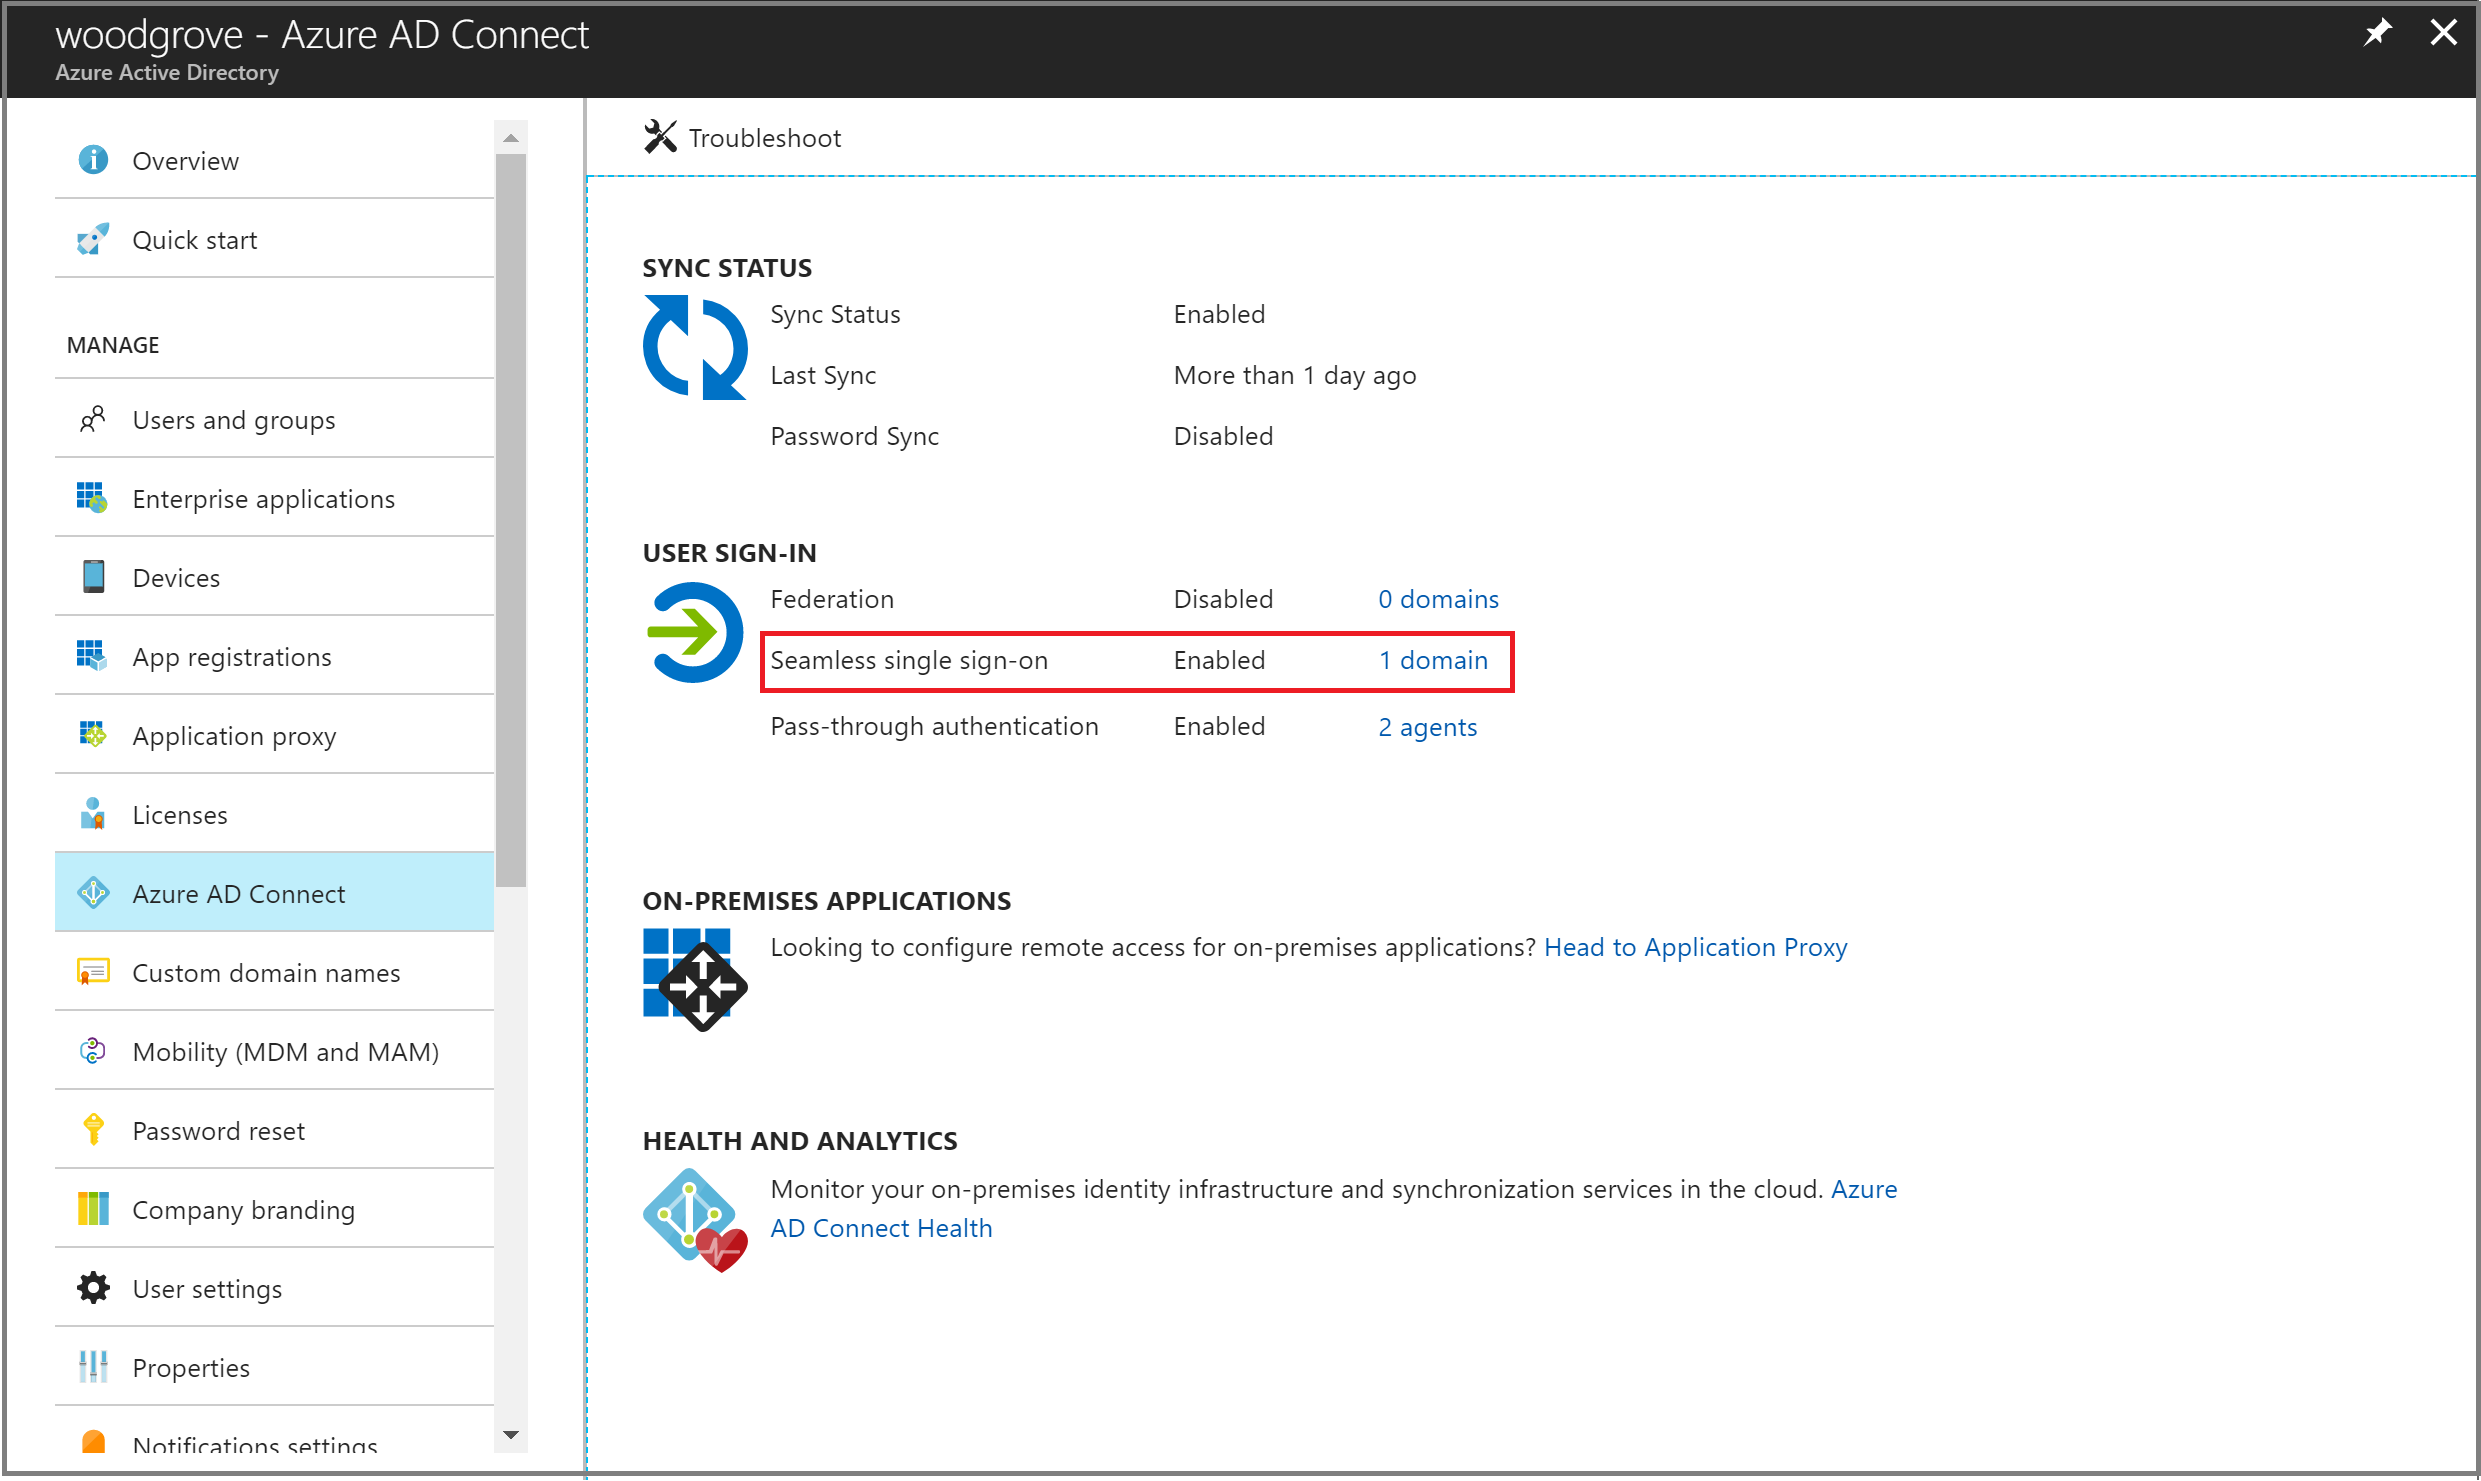 Azure AD Connect: Seamless Single Sign-On - quick start